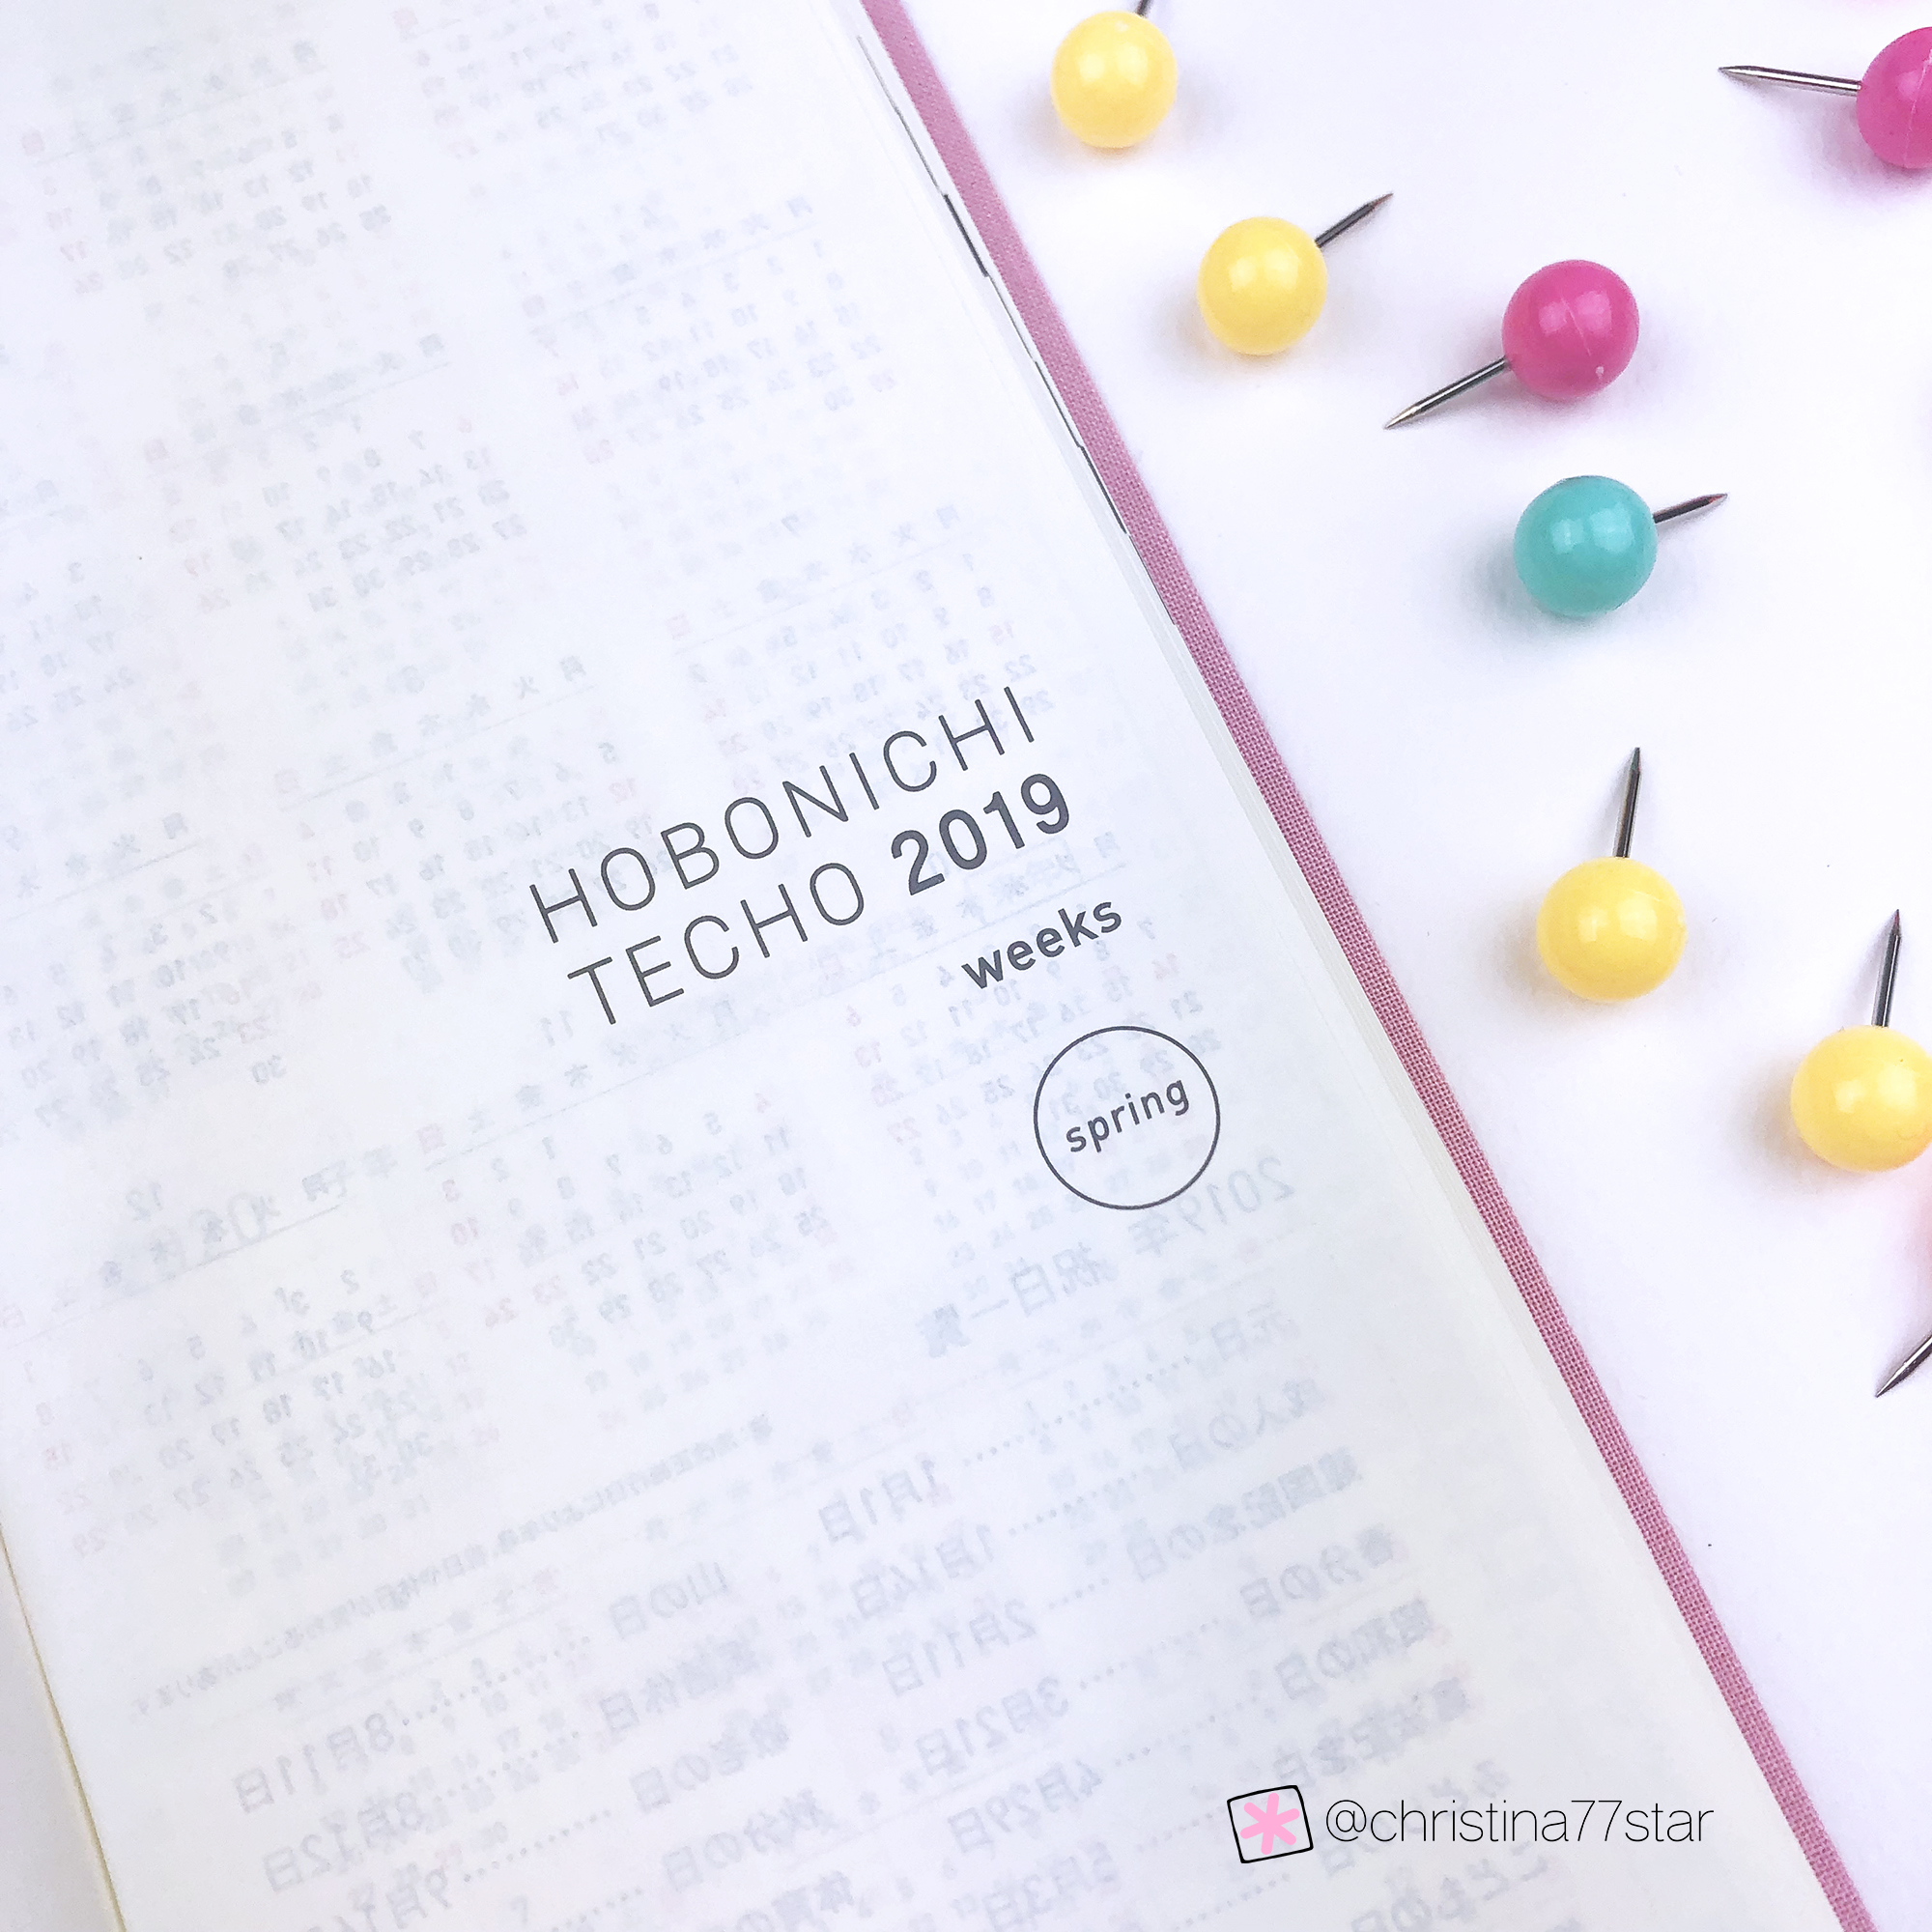 Hobonichi Techo Weeks 2019 Review - www.christina77star.net